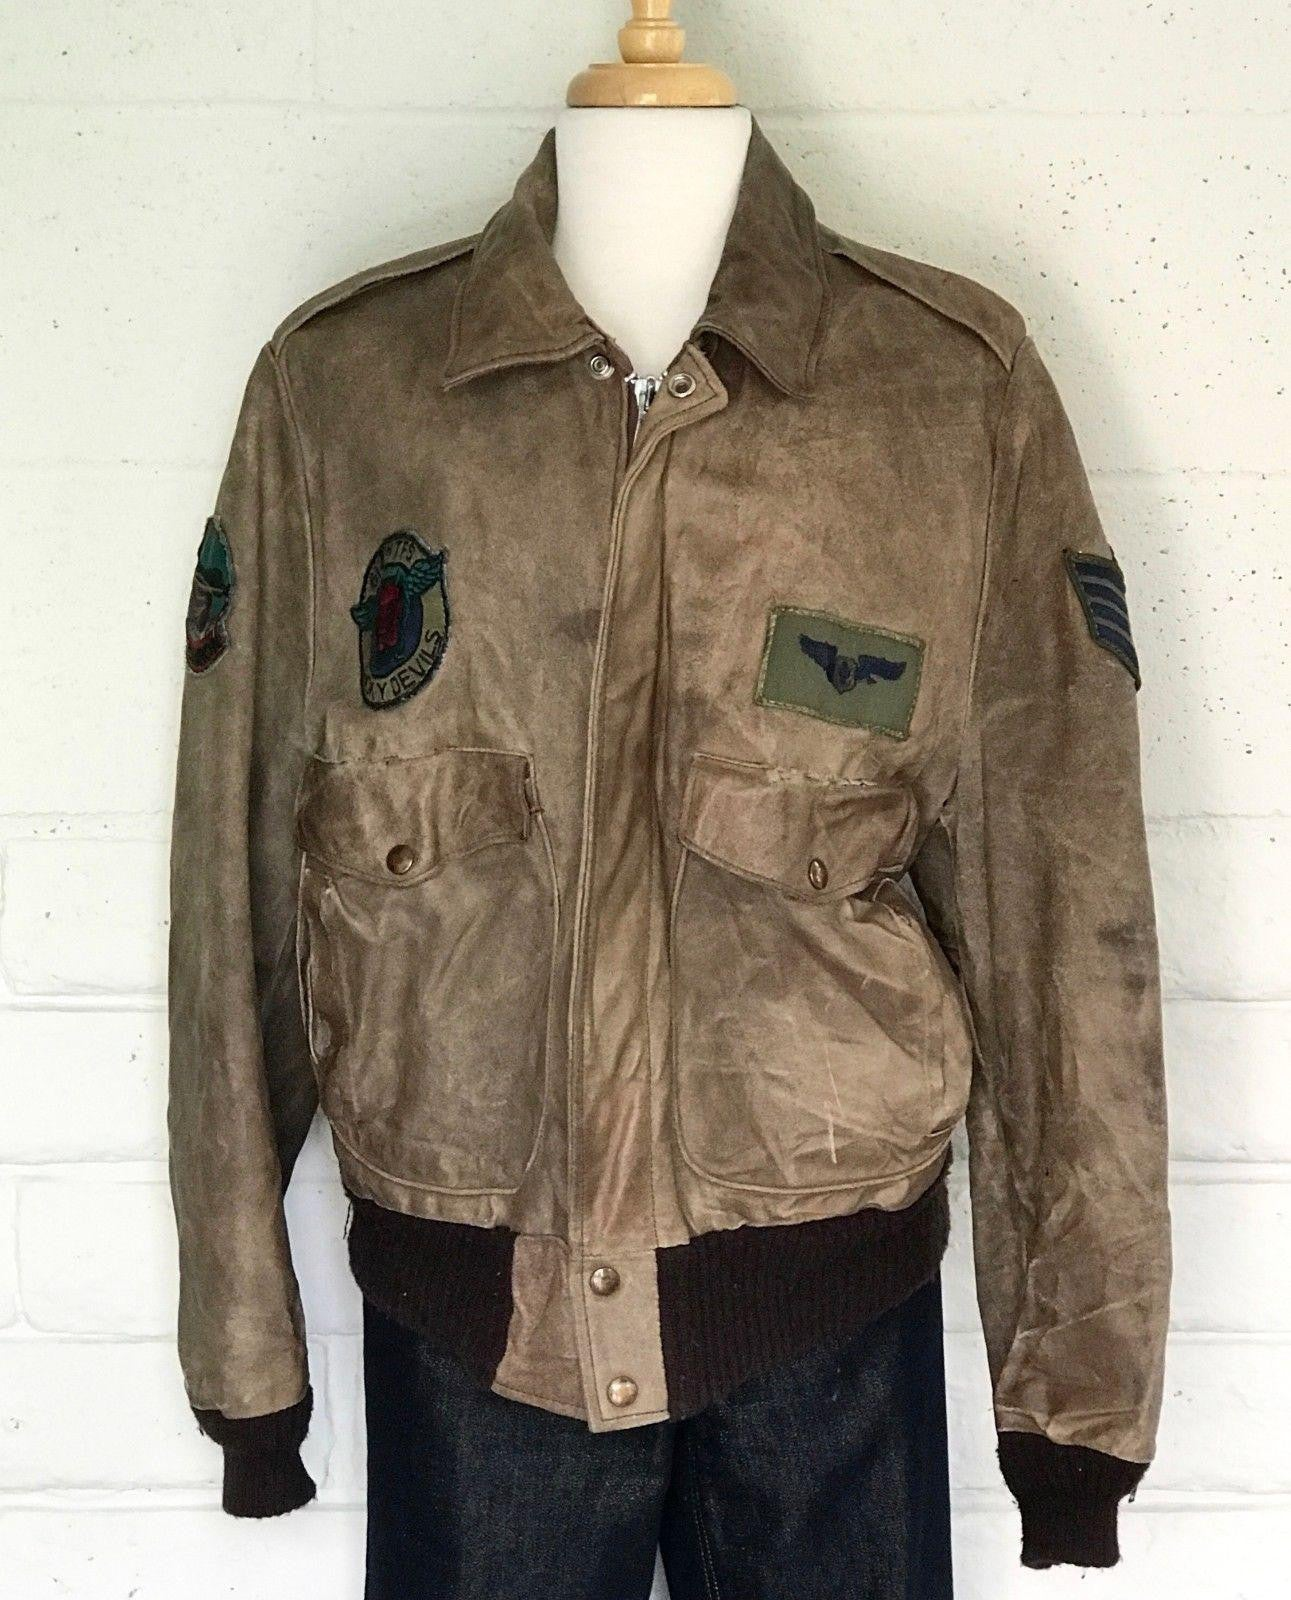 Vintage US Air Force Bomber Jacket